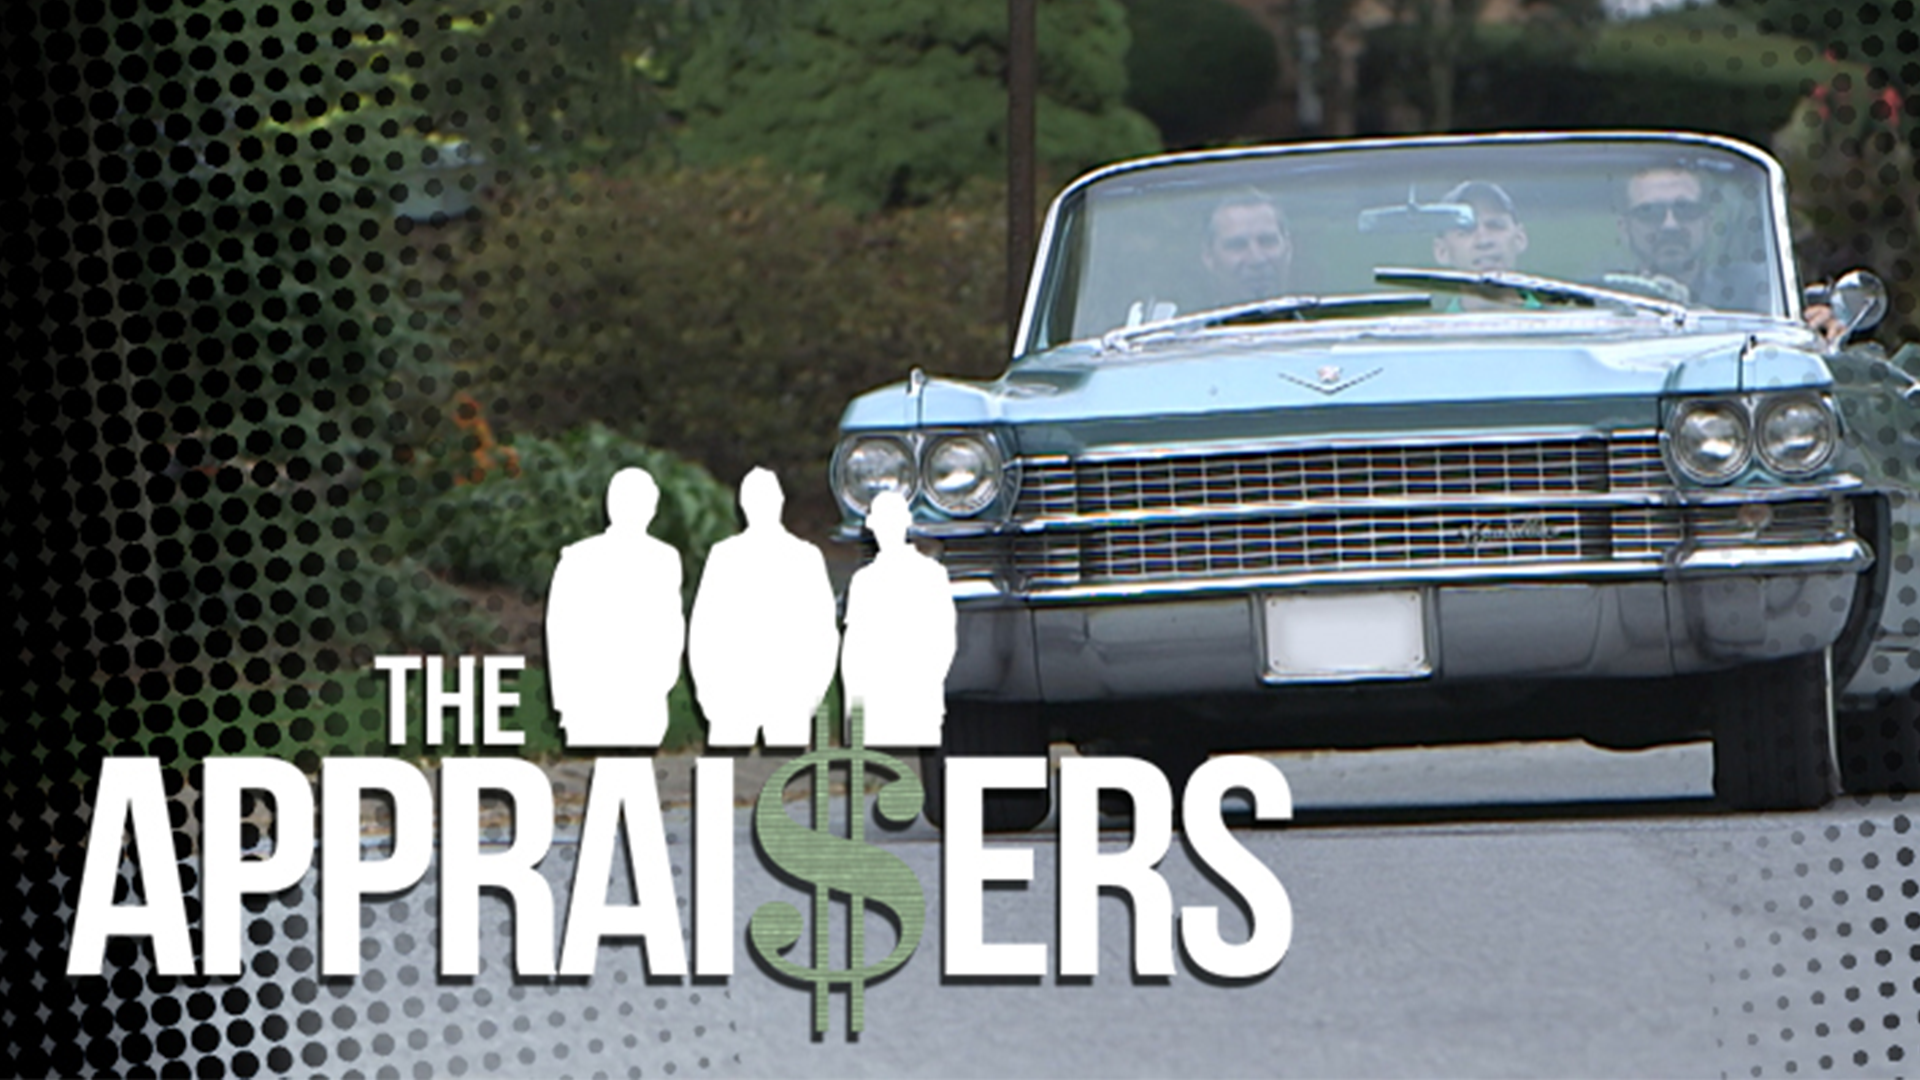 The Appraisers